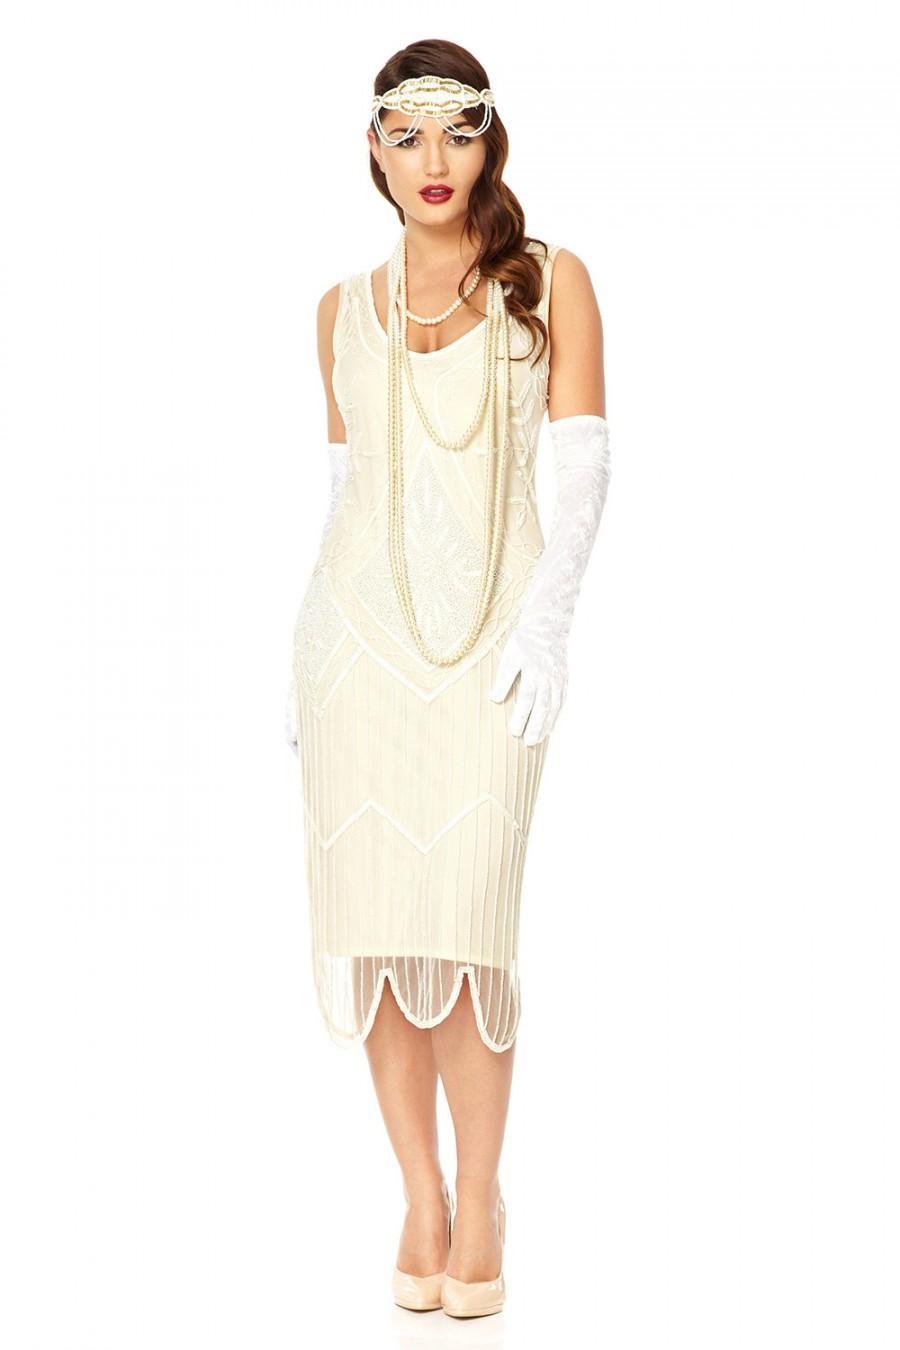 Evelyn Wedding Dress White Vintage 1920s Inspired Flapper Great ...